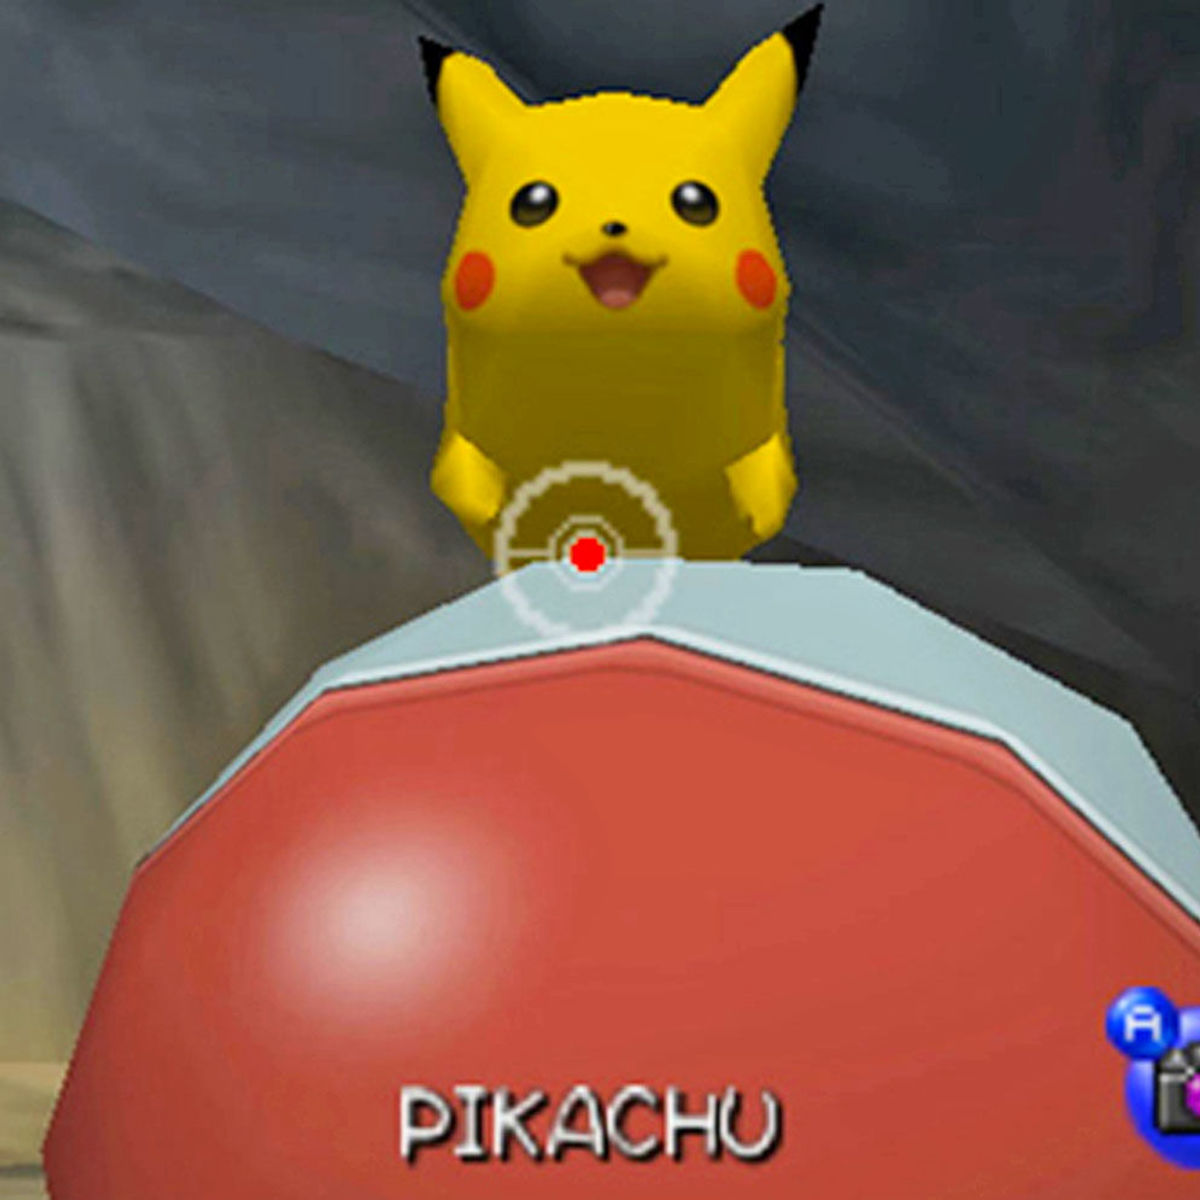 Pikachu pokemon snap